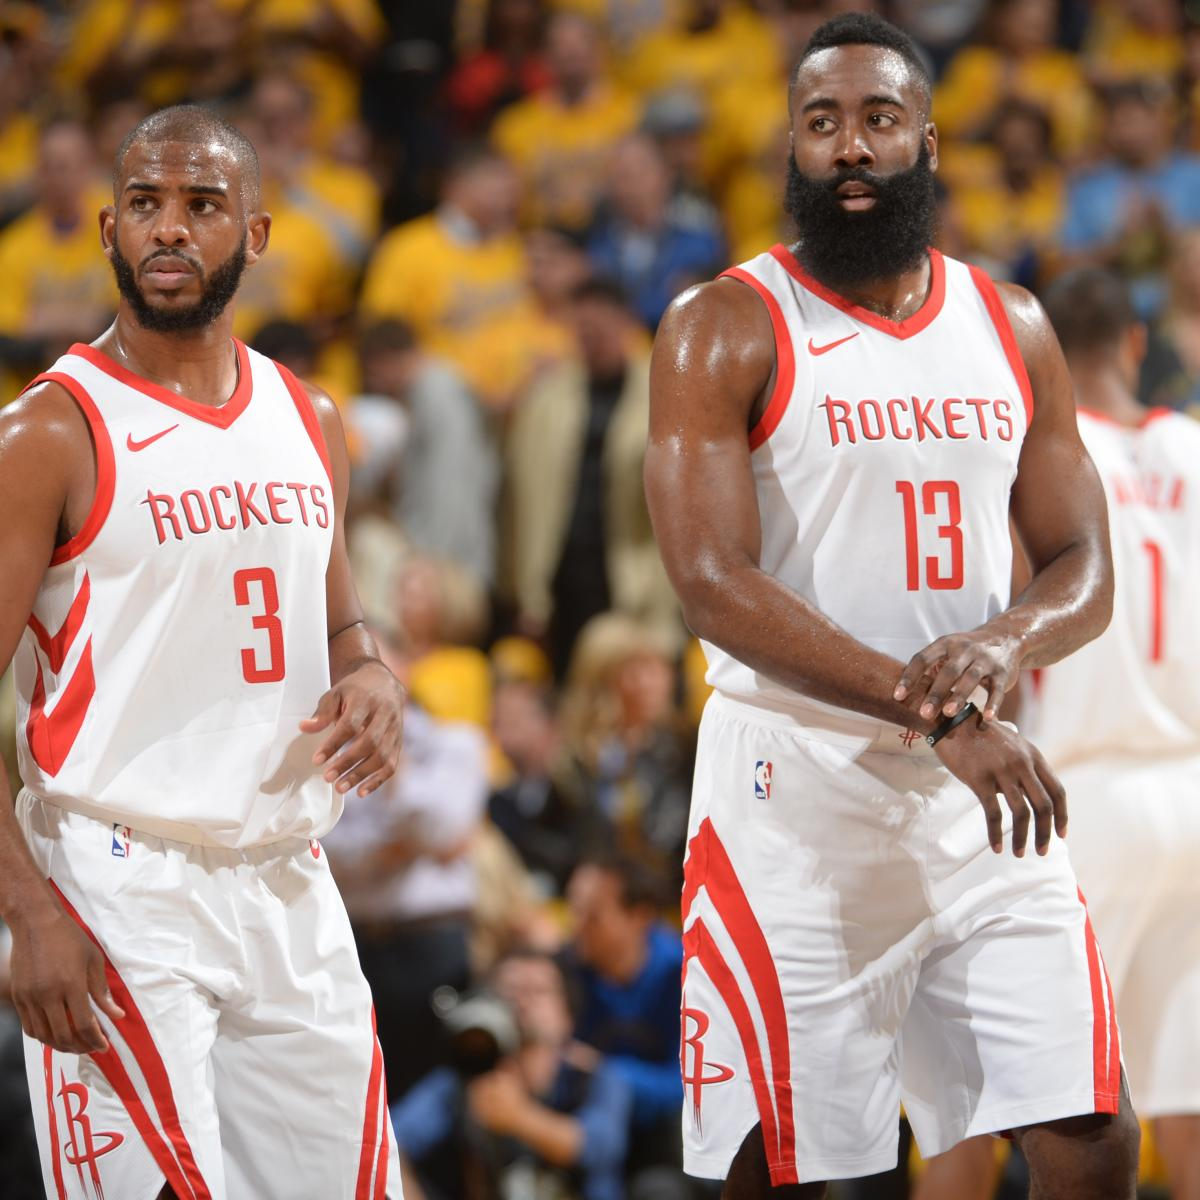 Rockets Vs Warriors Harden: James Harden, Chris Paul Carry Rockets To Crucial Game 4